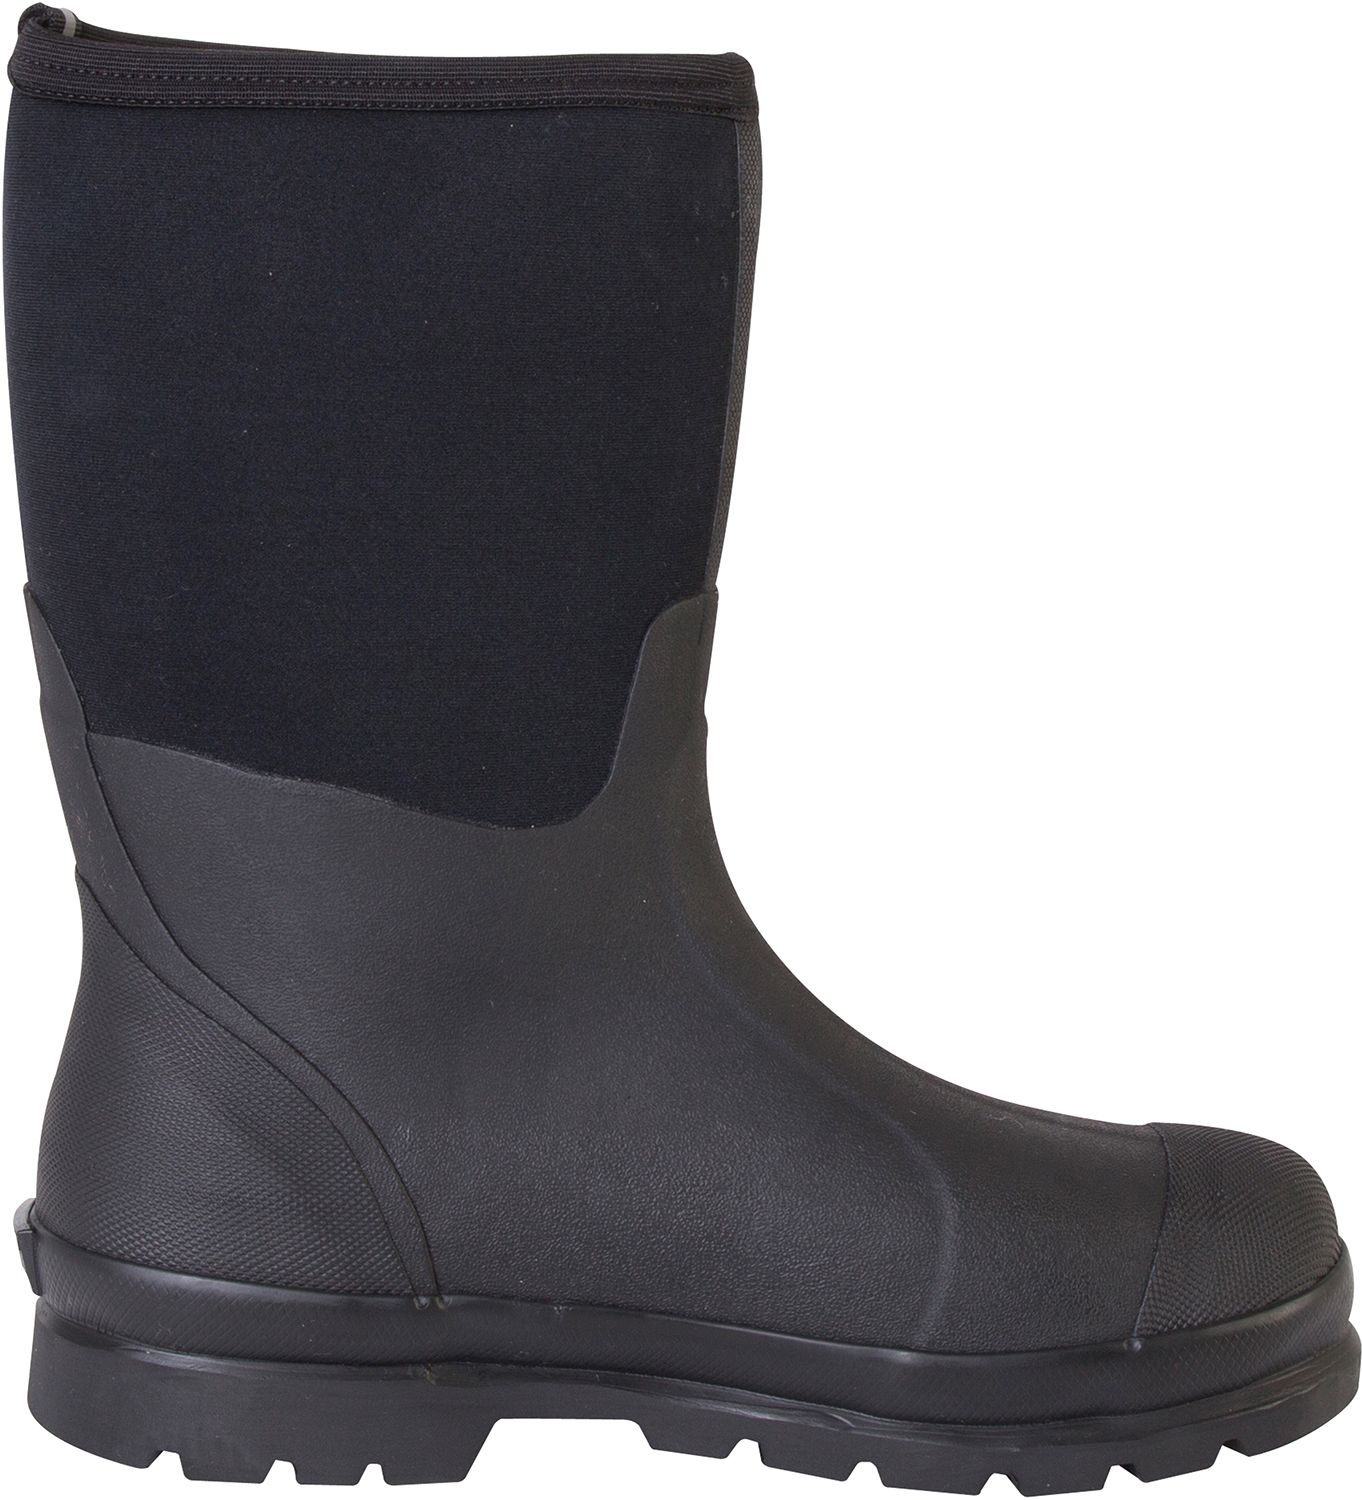 Muck Boot Men's Chore Mid Waterproof Work Boots | DICK'S Sporting ...